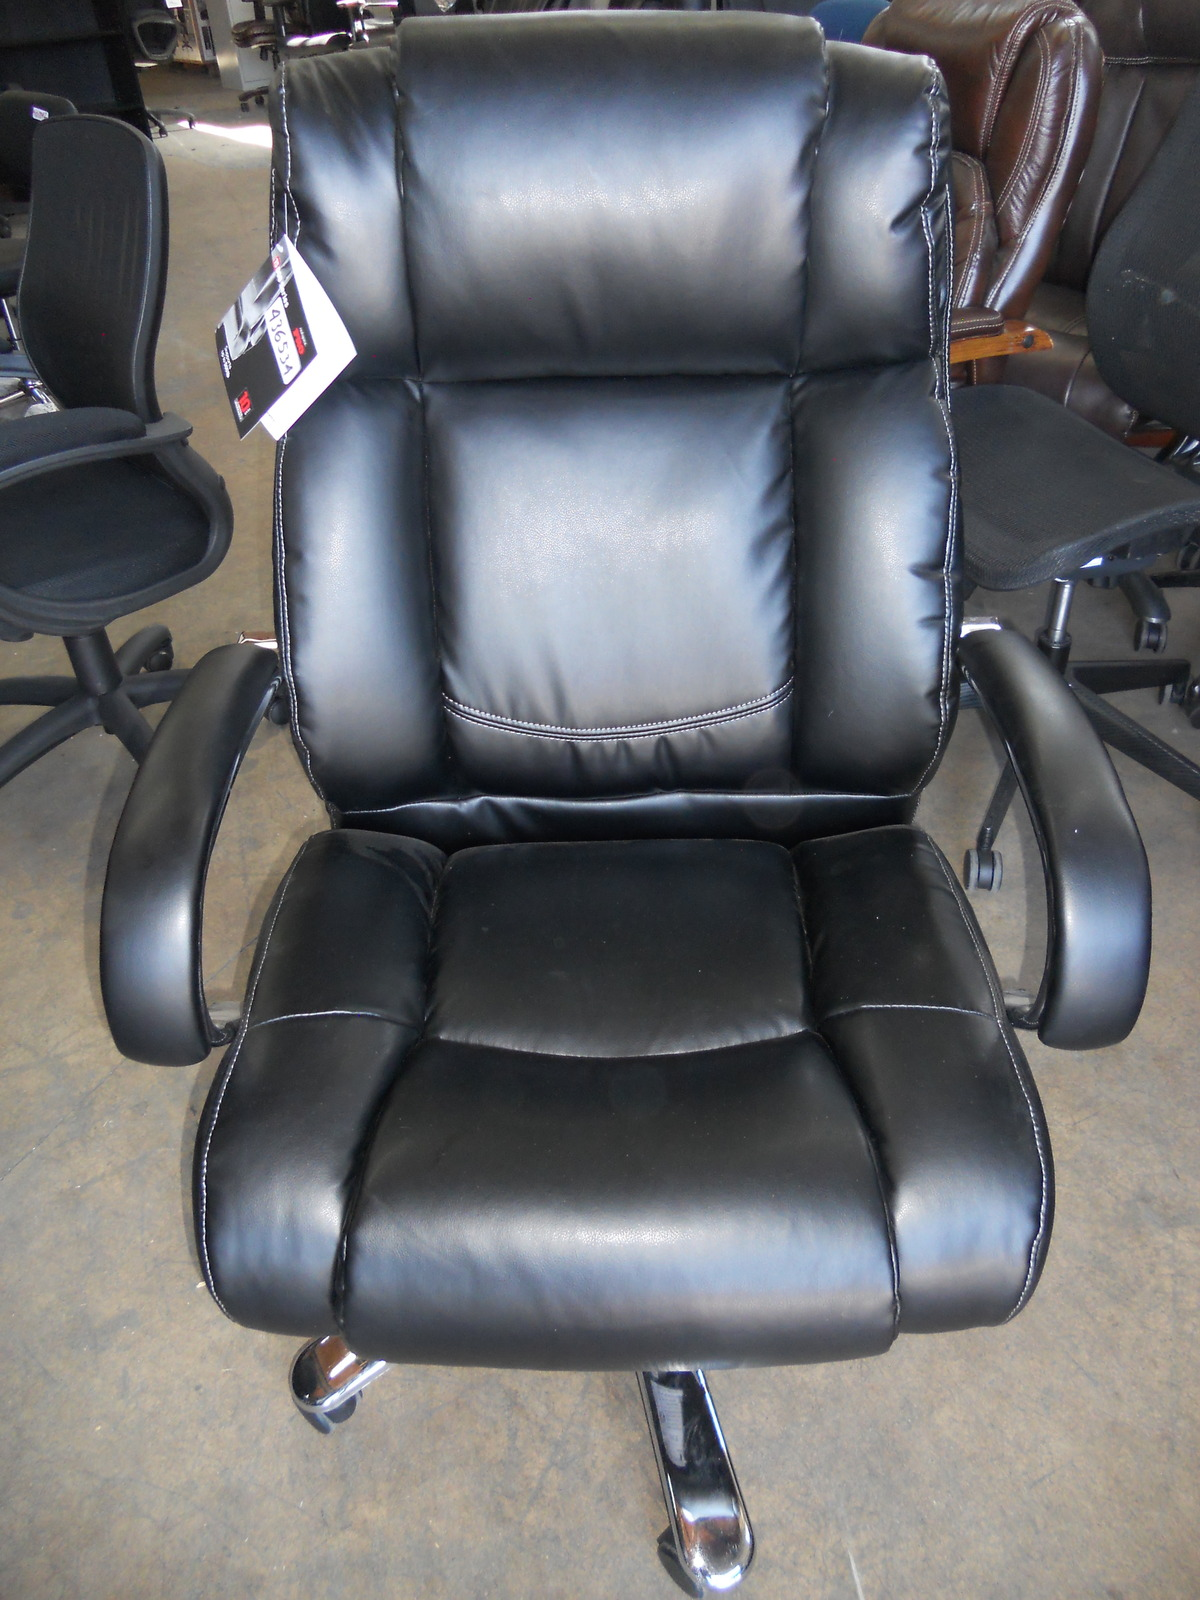 Realspace Chairs Realspace Pro 15000 Series Big And Tall High Back Chair